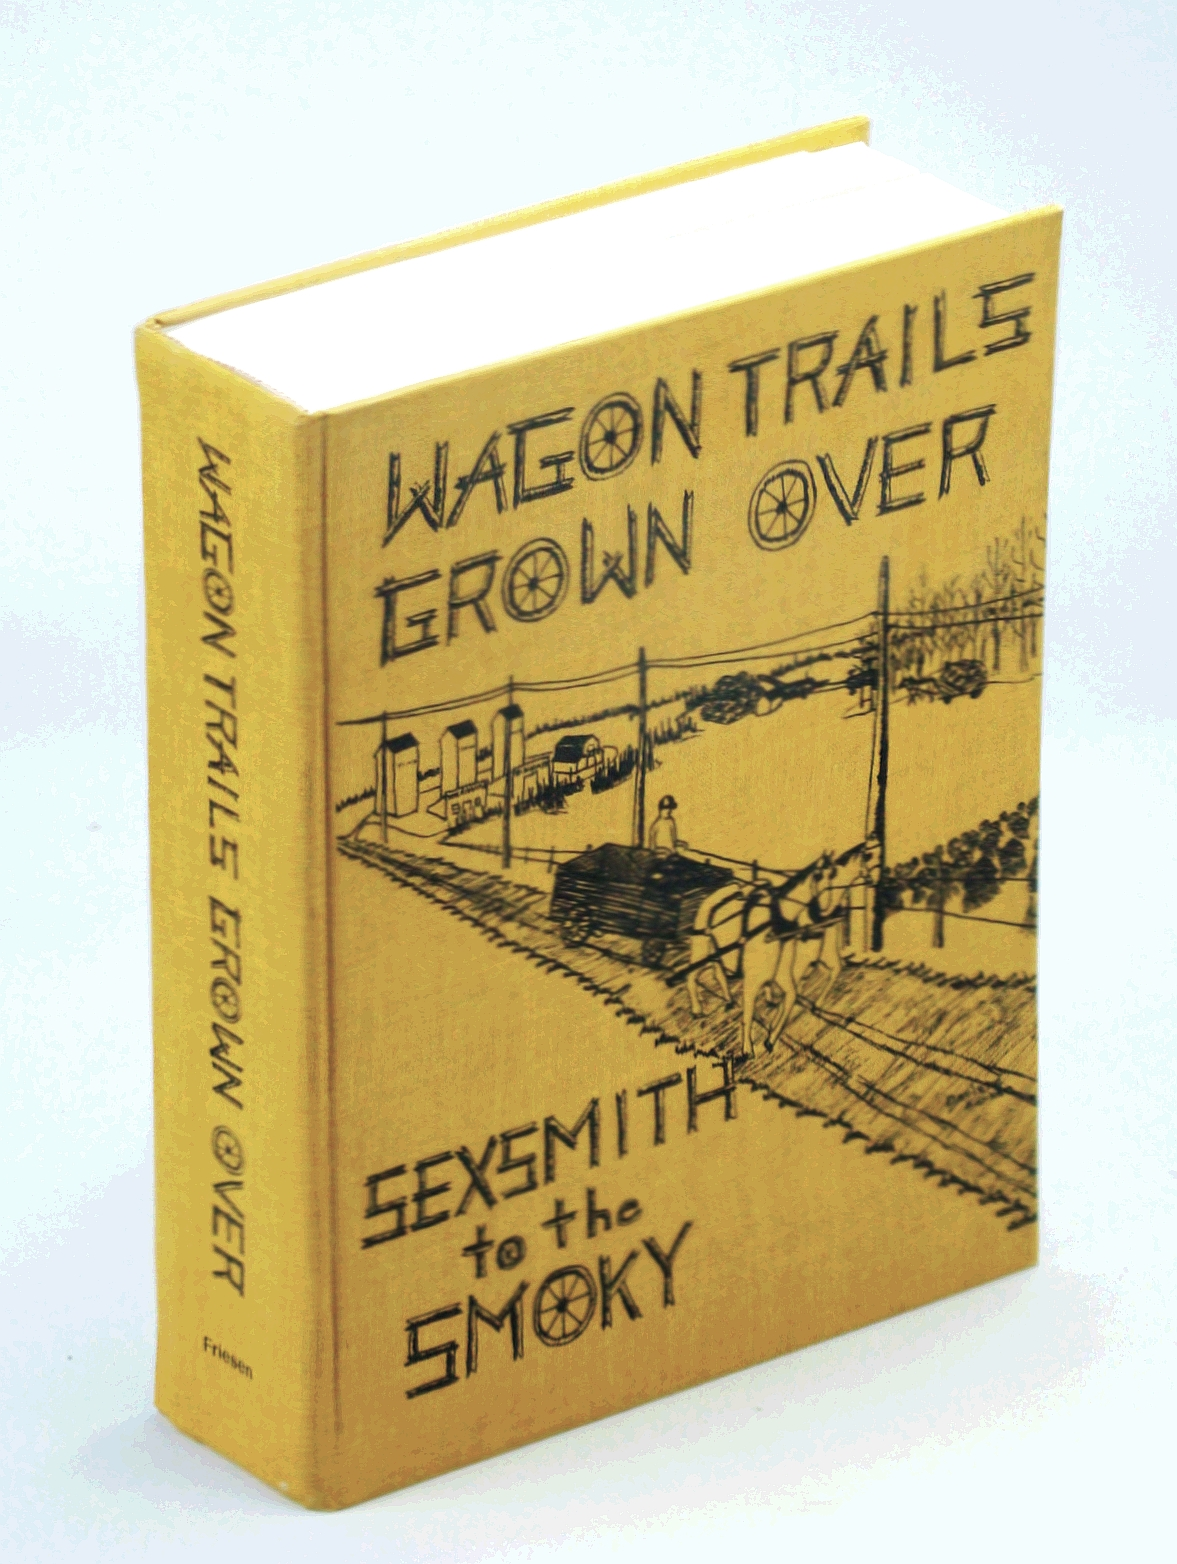 Image for Wagon Trail Grown Over - Sexsmith to the Smoky: History of Sexsmith, Alberta and District